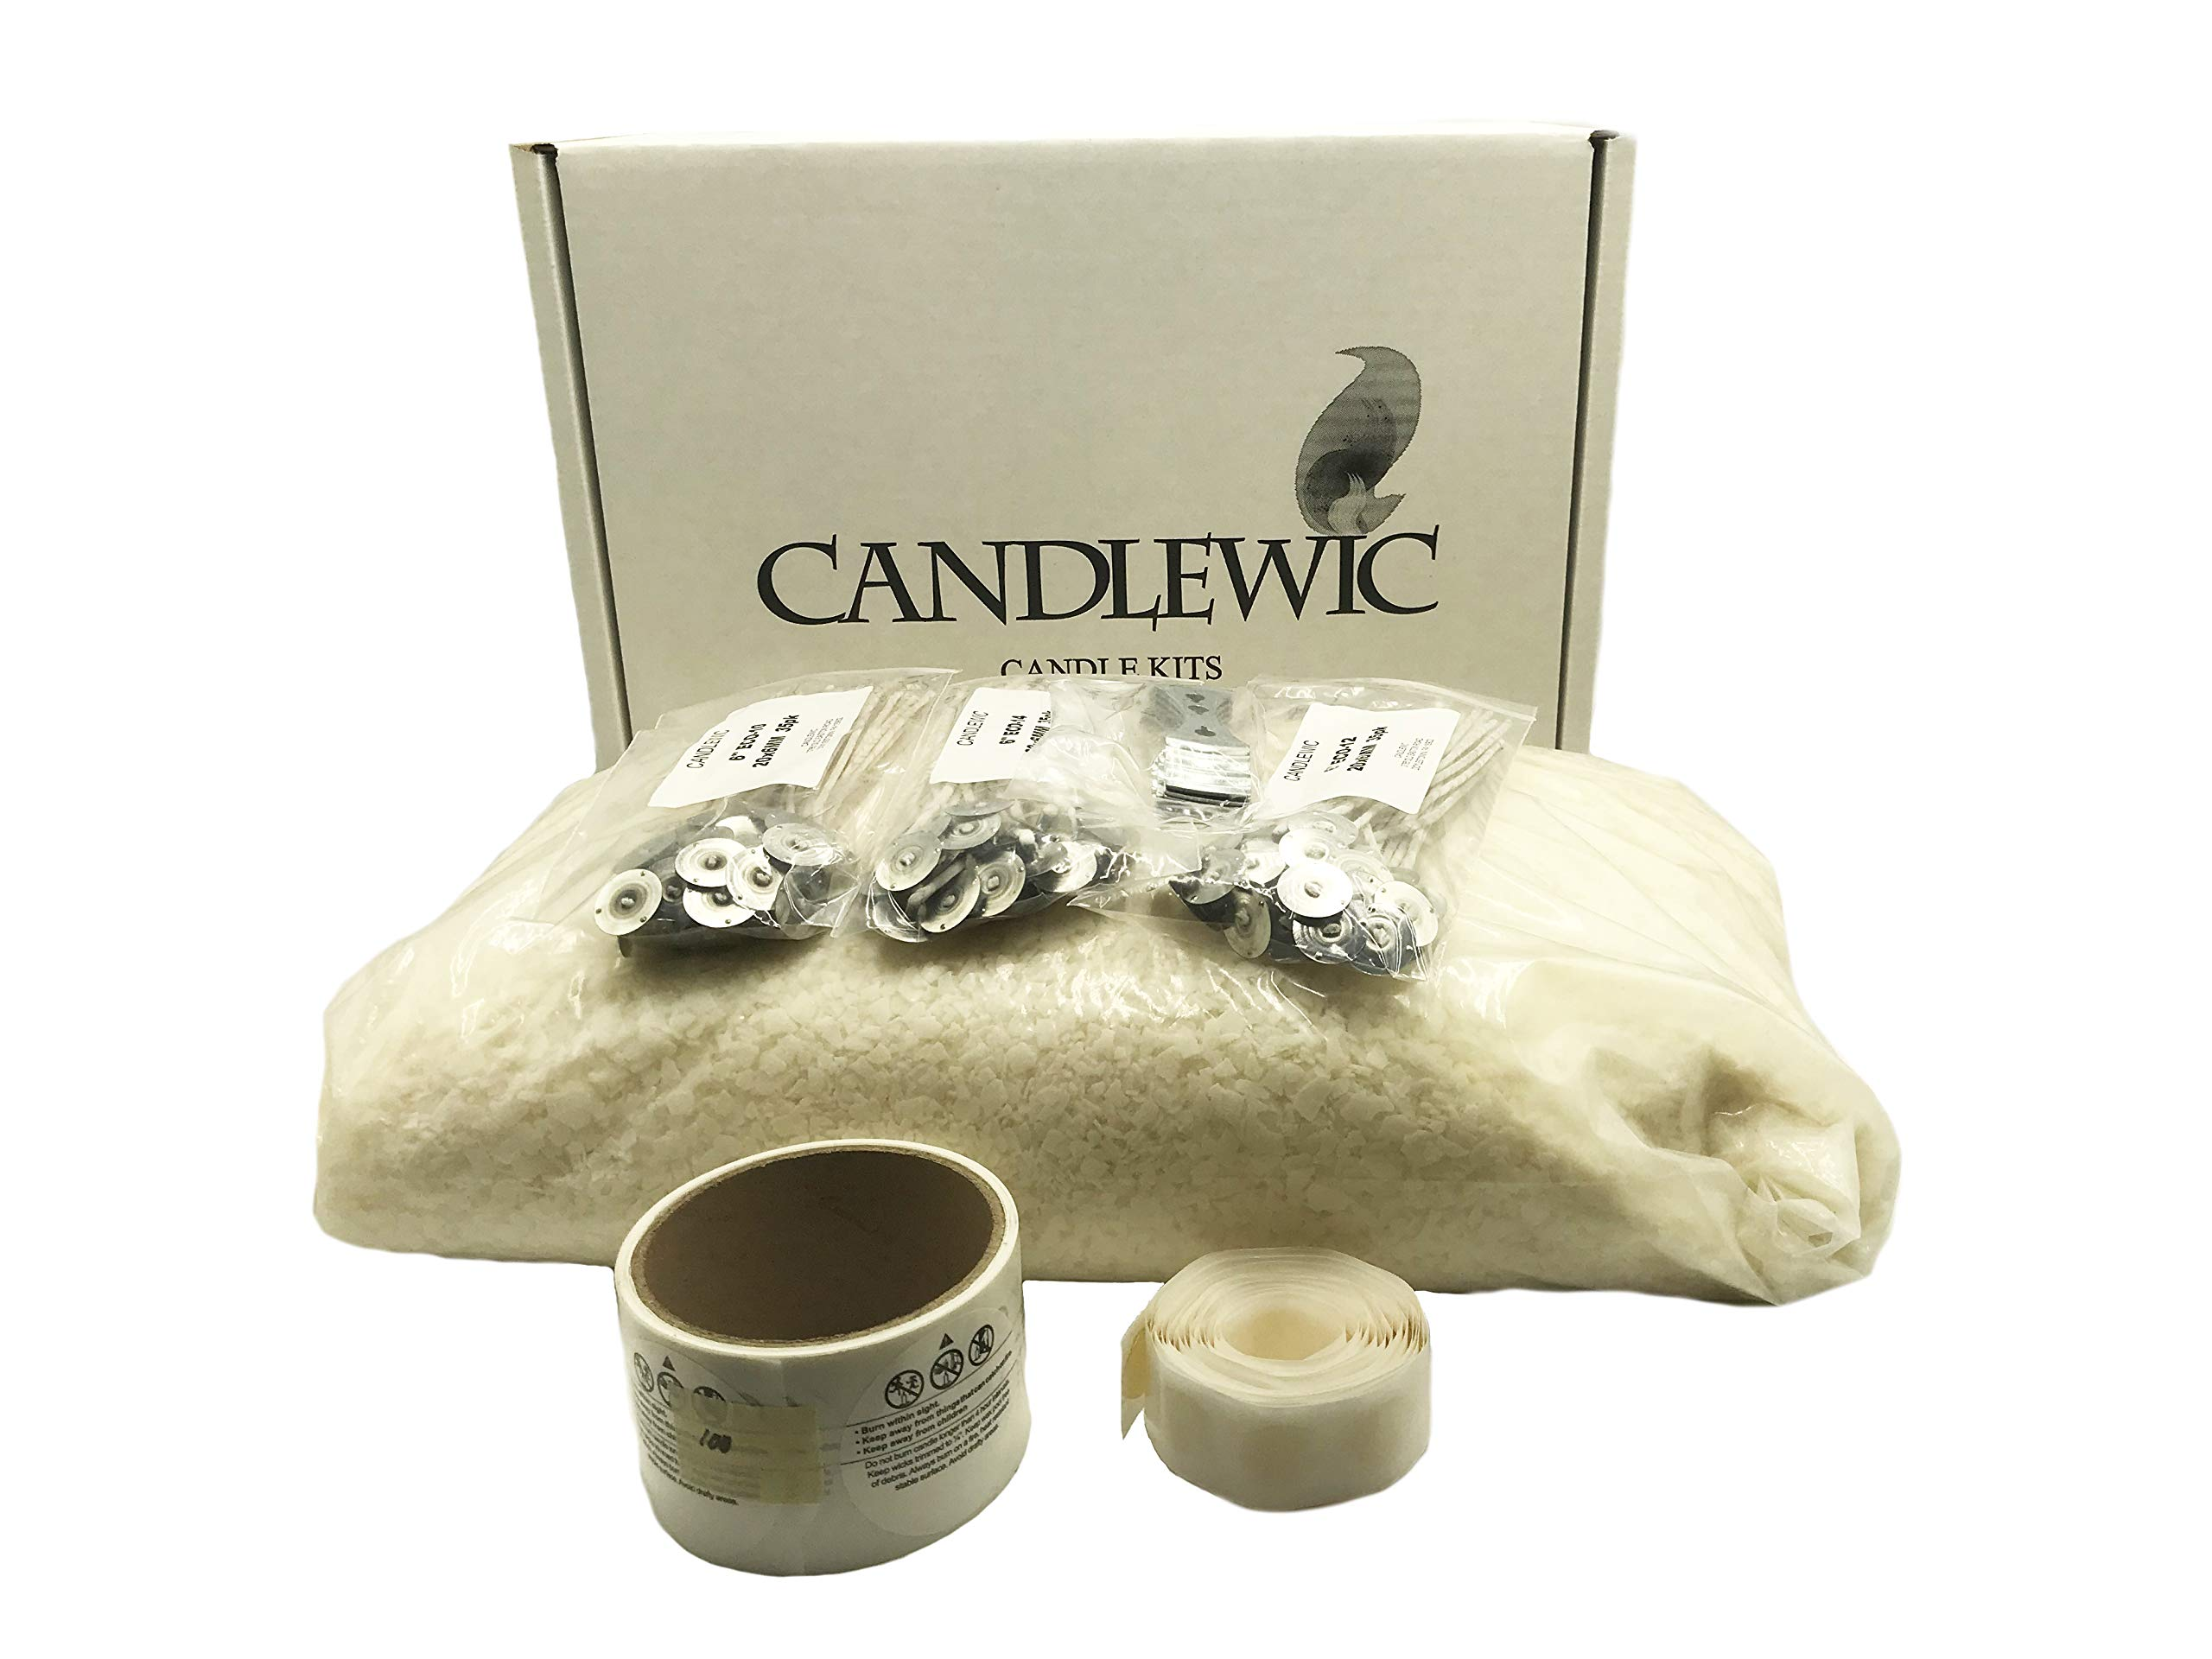 10 lb. Soy Wax, Wicks, Glue Dots and Burning Instructions by Candlewic (Image #1)